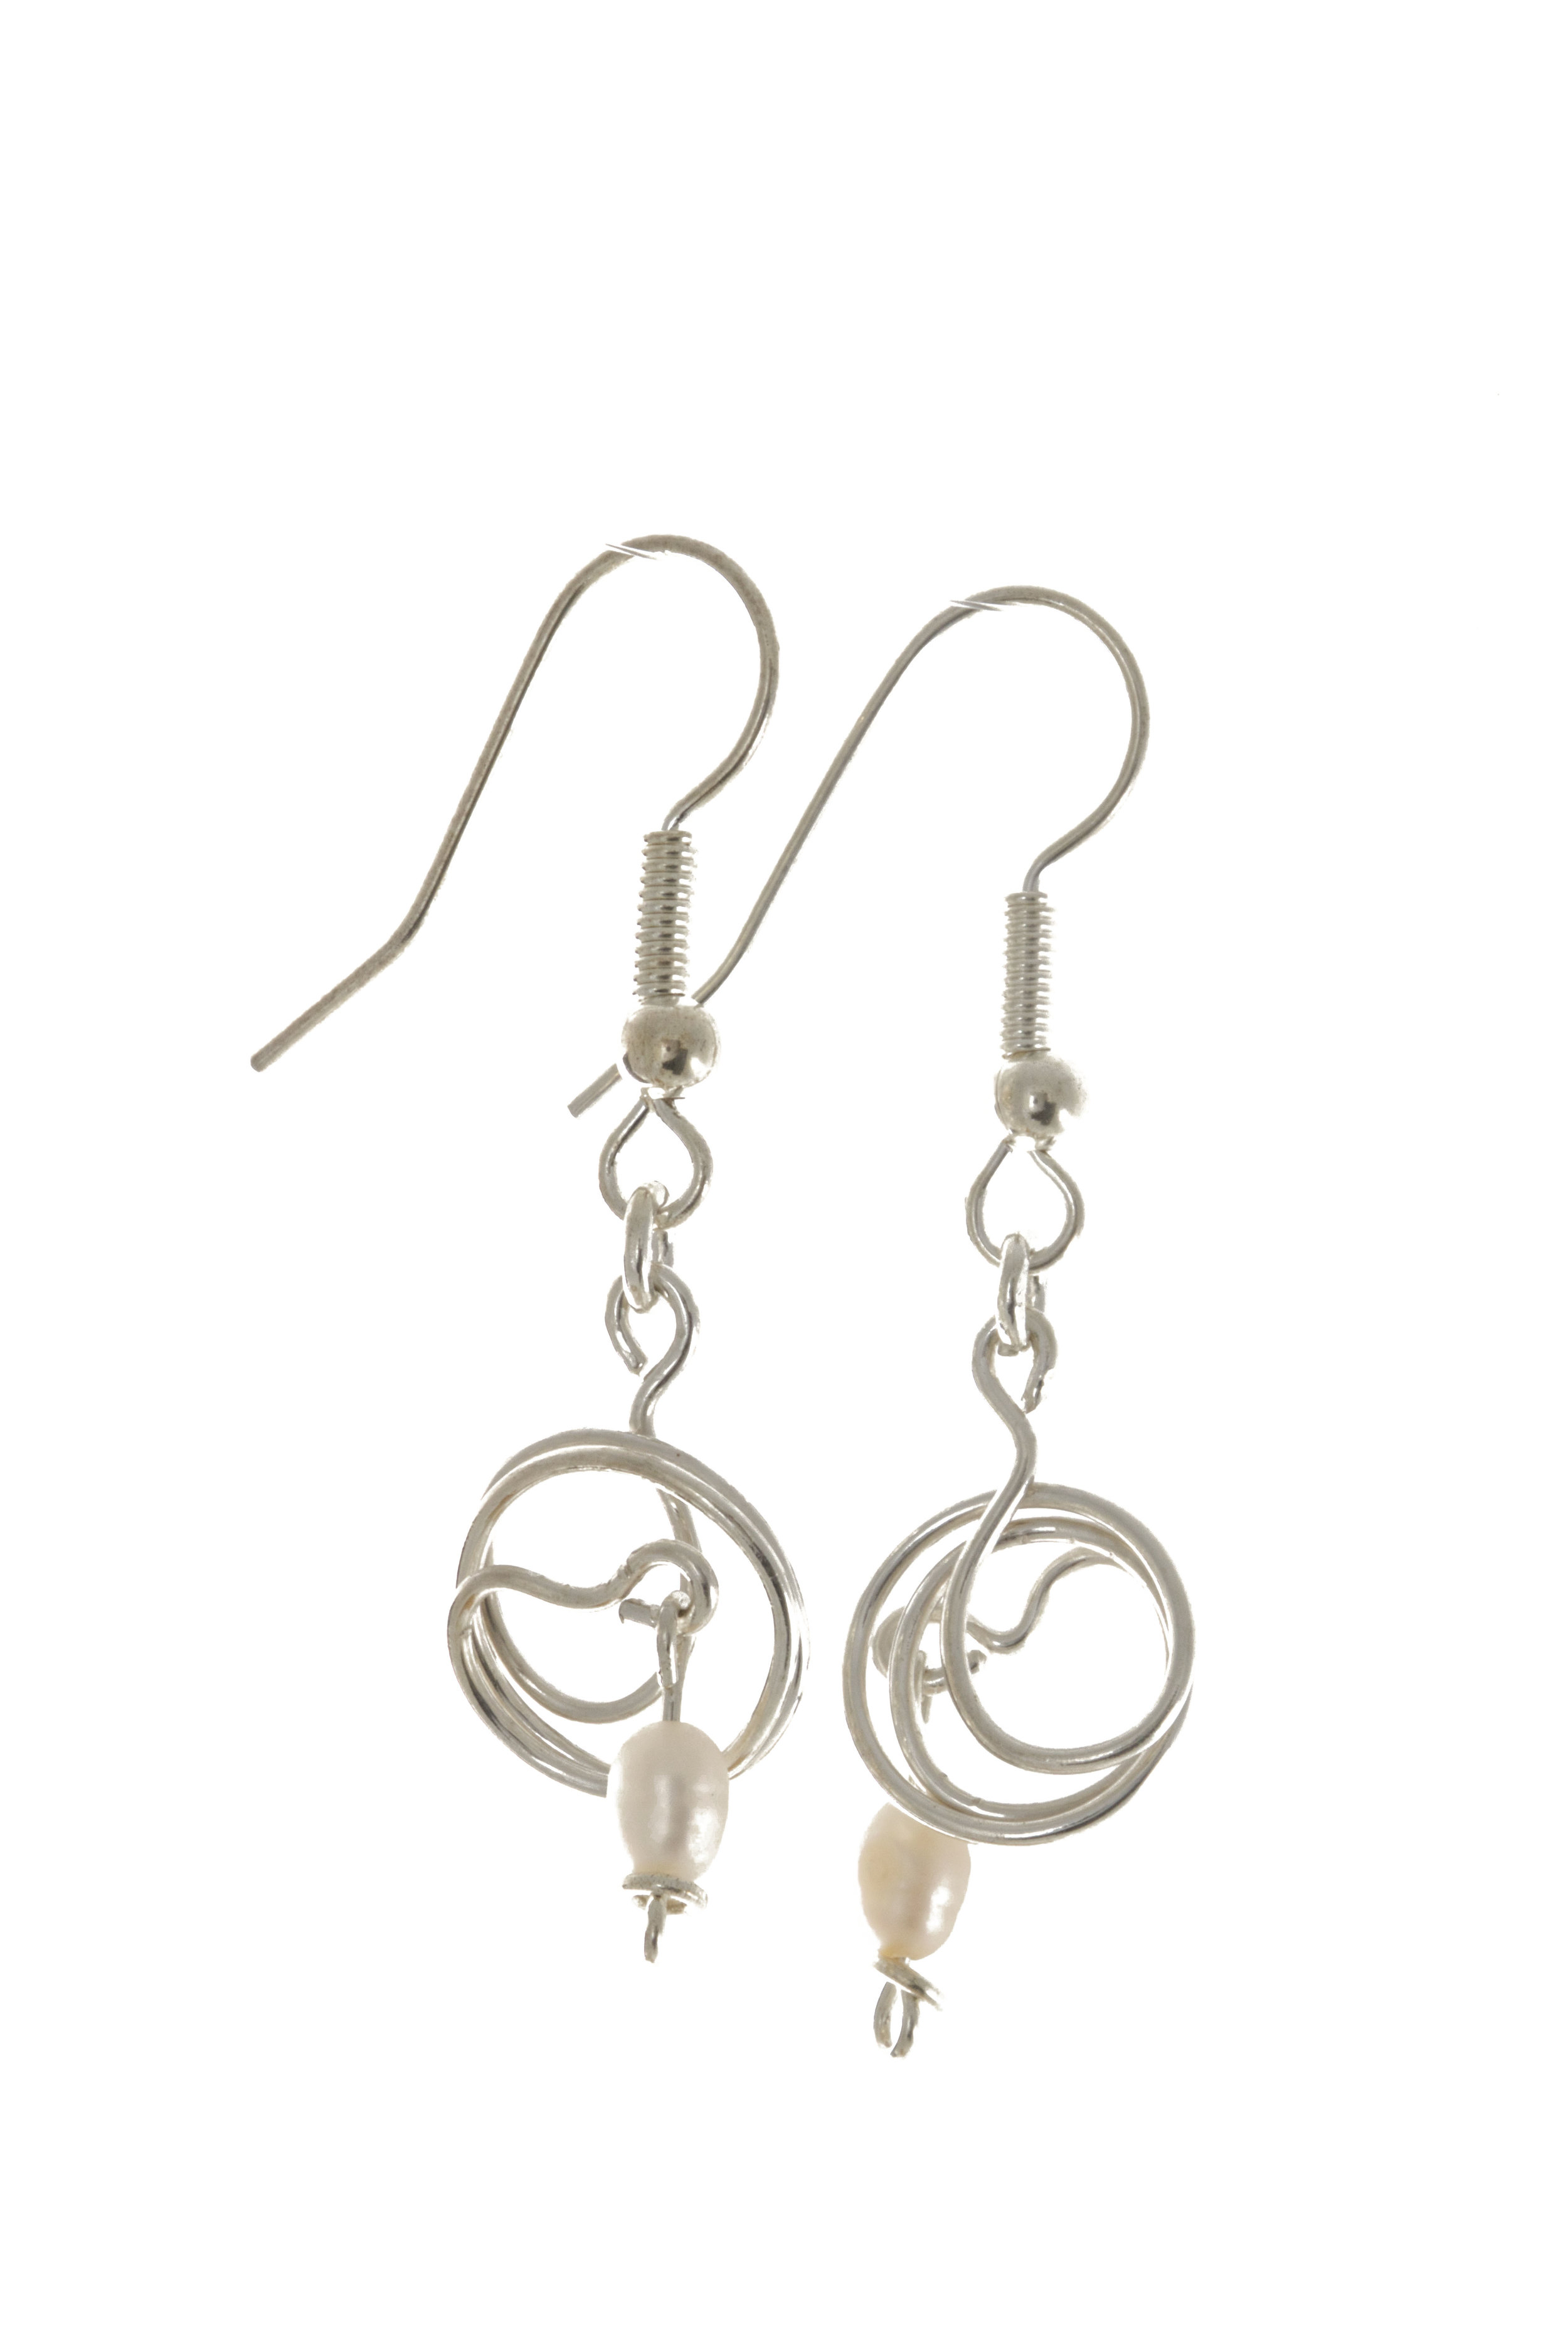 Silver and Pearl earrings.